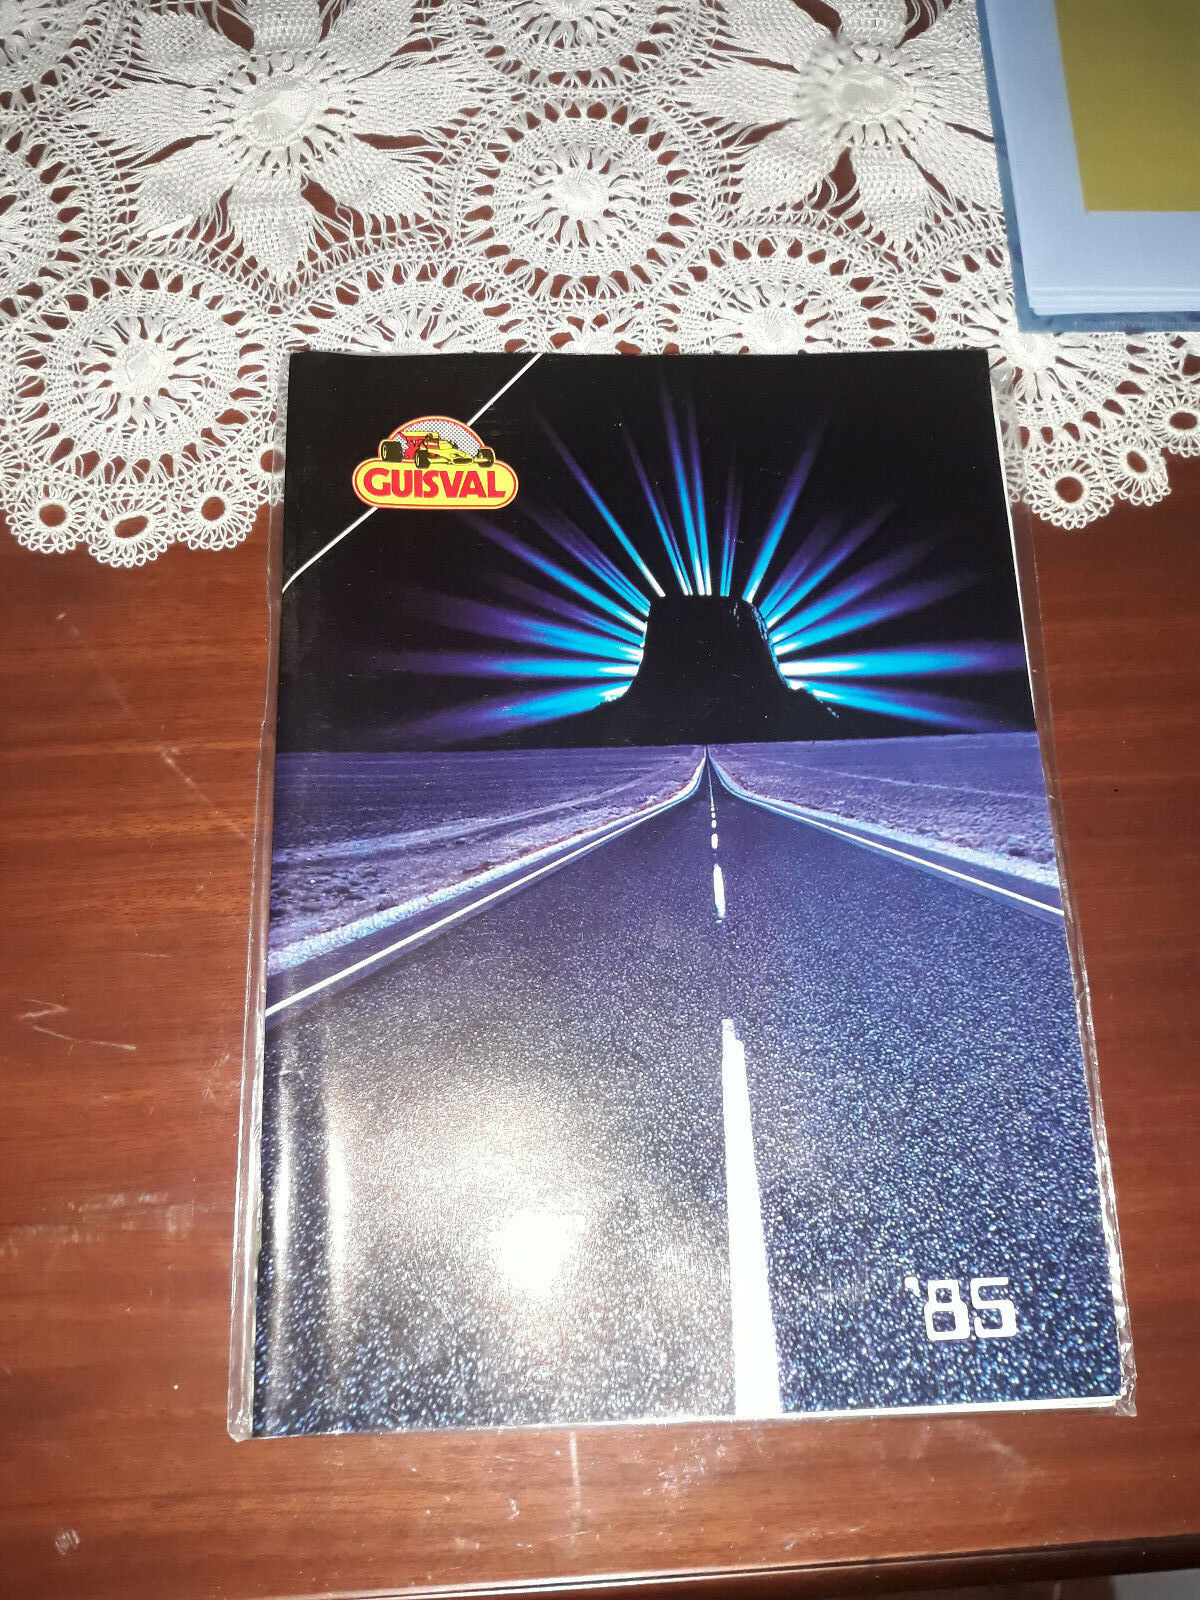 Guisval-Catalog 1985 - has 49 pages color